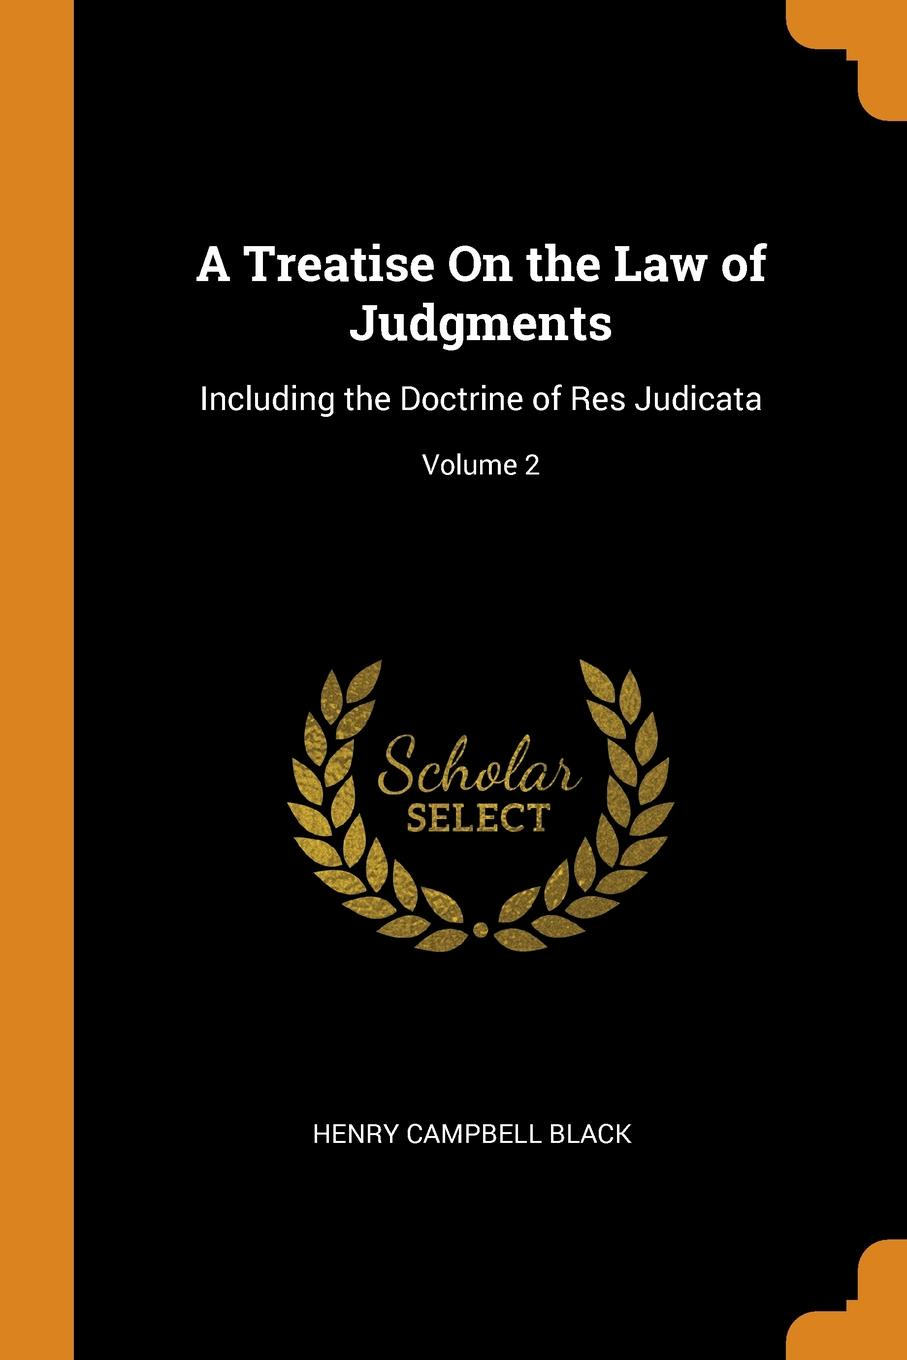 A Treatise On the Law of Judgments. Including the Doctrine of Res Judicata; Volume 2. Henry Campbell Black